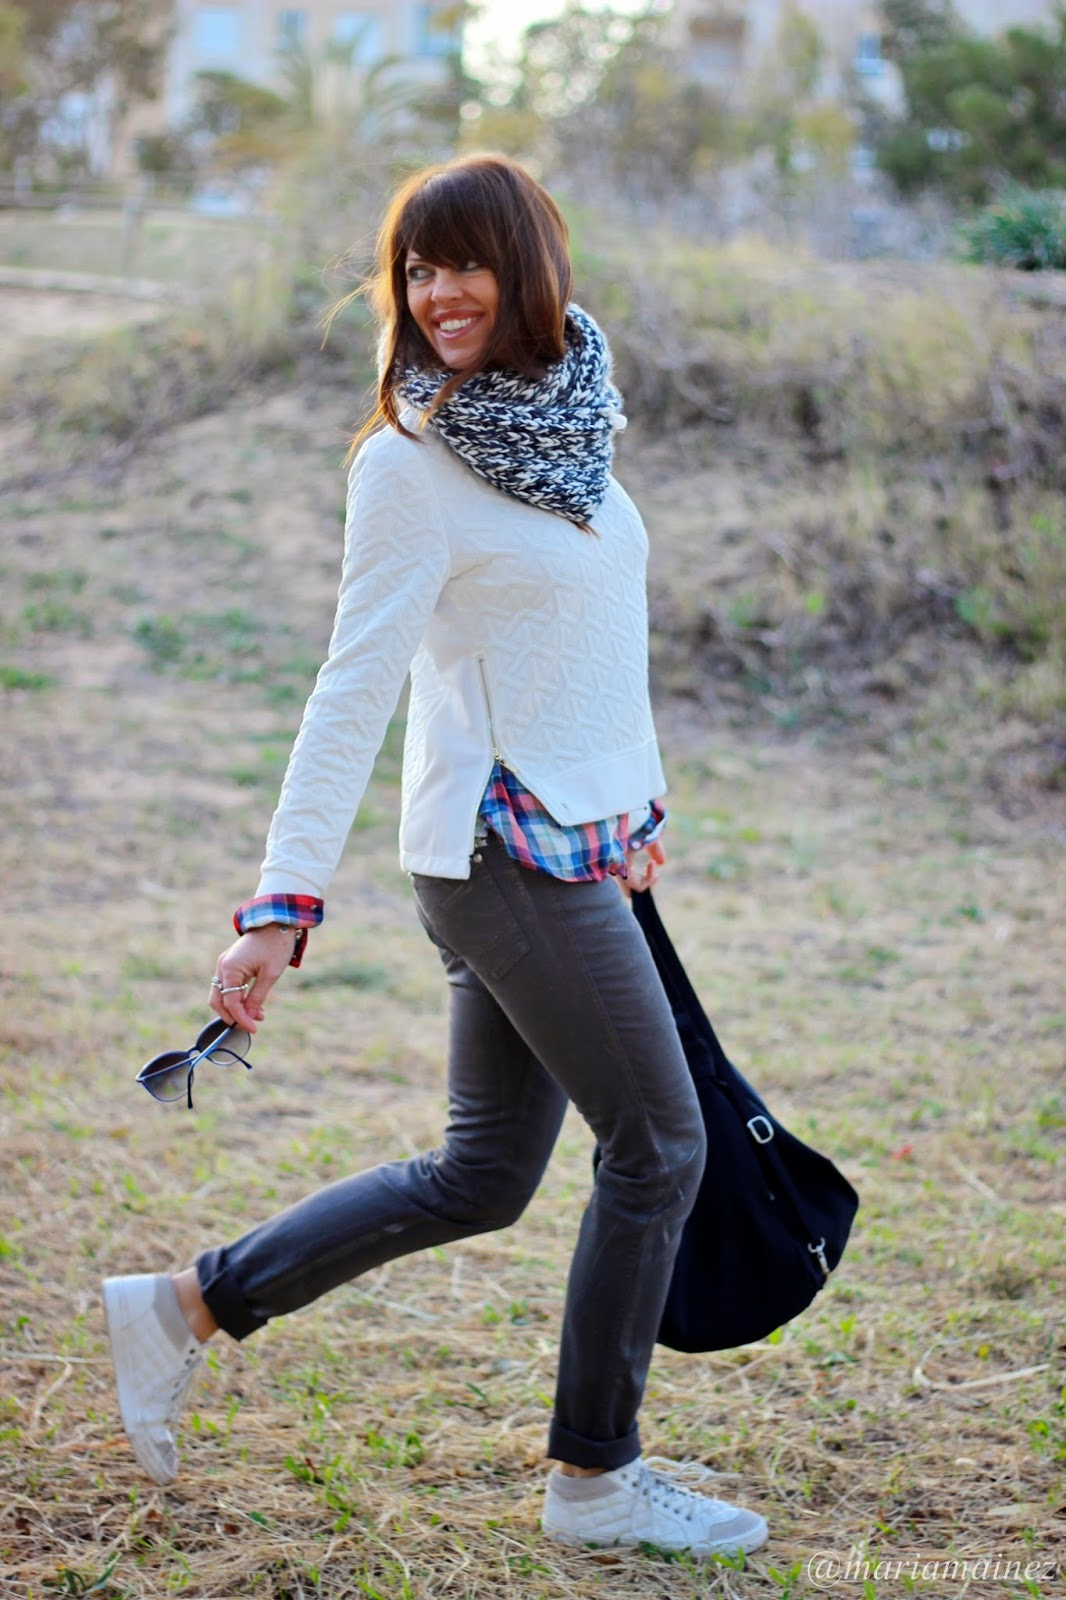 Sudadera - Streetstyle - Outfit invierno 2015 - bbeautifulbymaria- sporty - sneakers - white